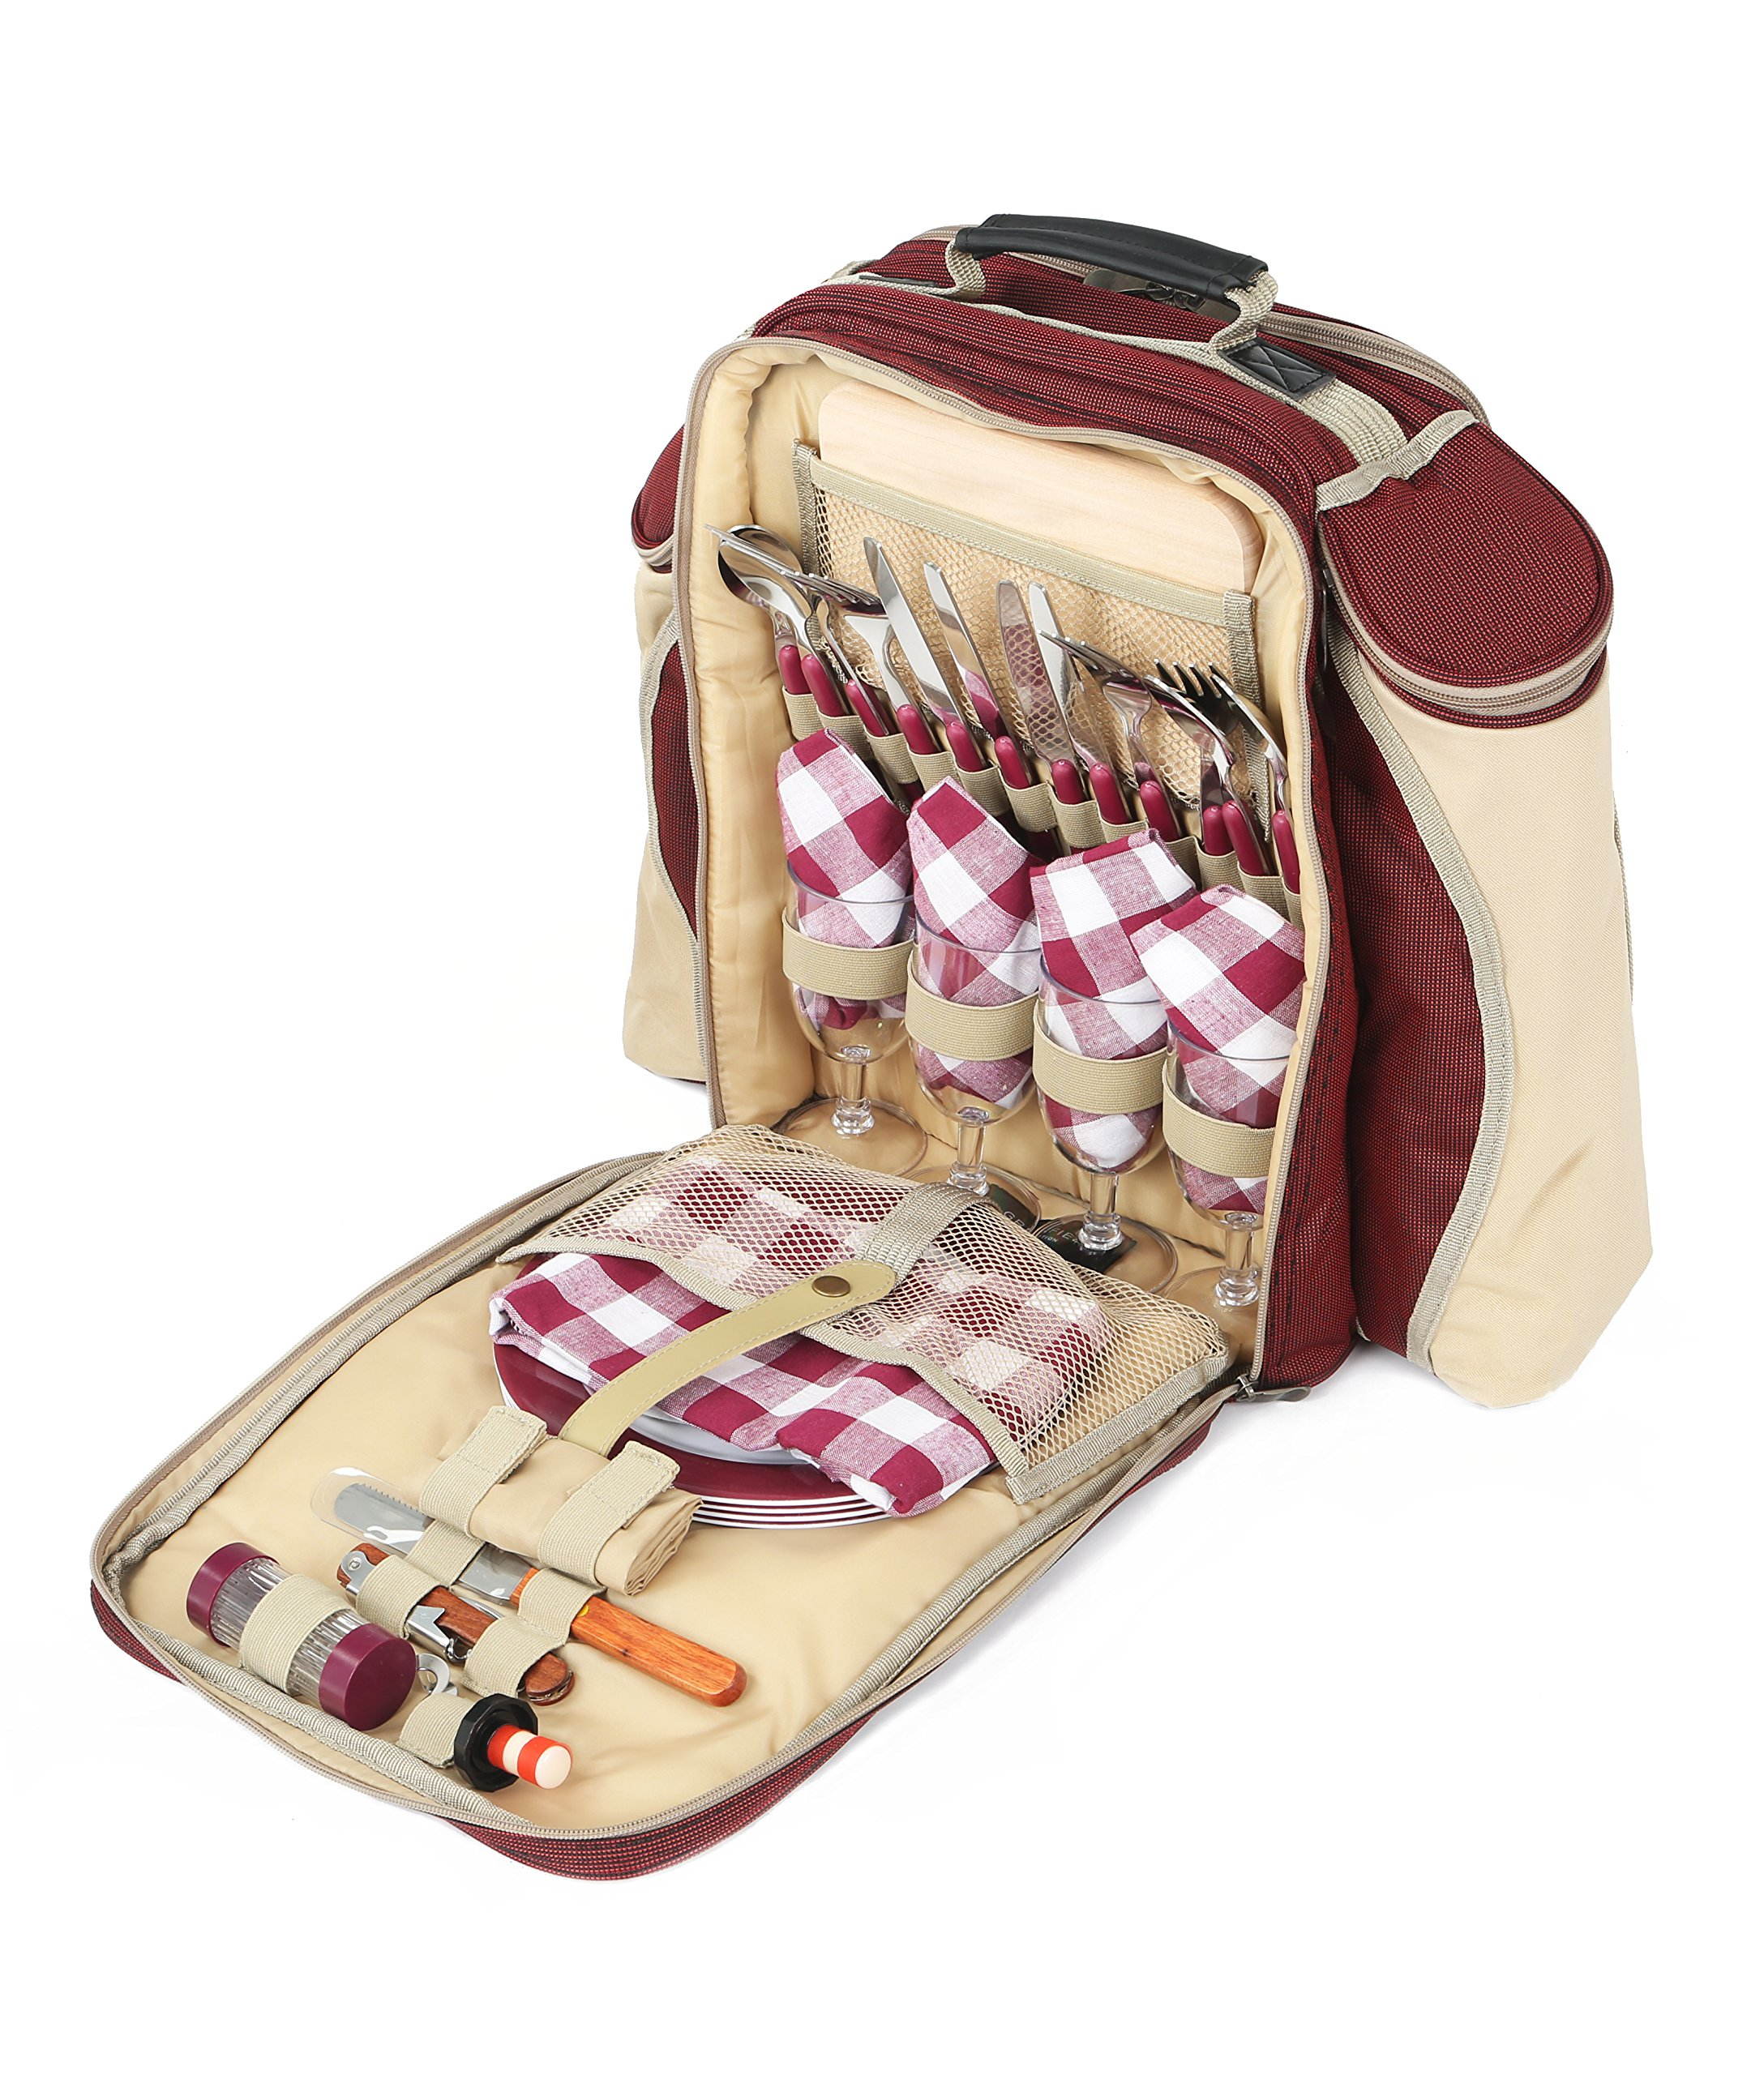 Greenfield Collection Deluxe Picnic Backpack Hamper for Four People in Mulberry Red - Fitted Backpack Range